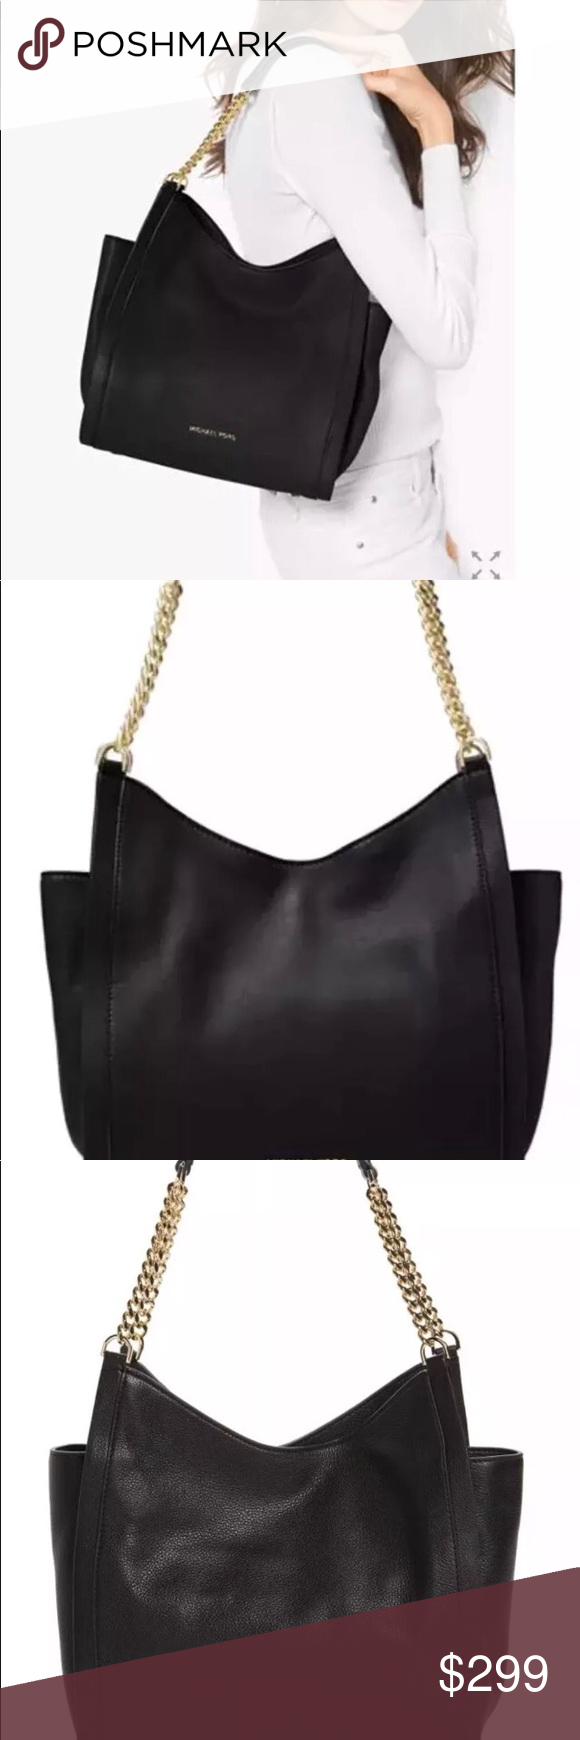 73166735711 Michael Kors Newbury chain MD bag black leather New with tags still in  original MK package